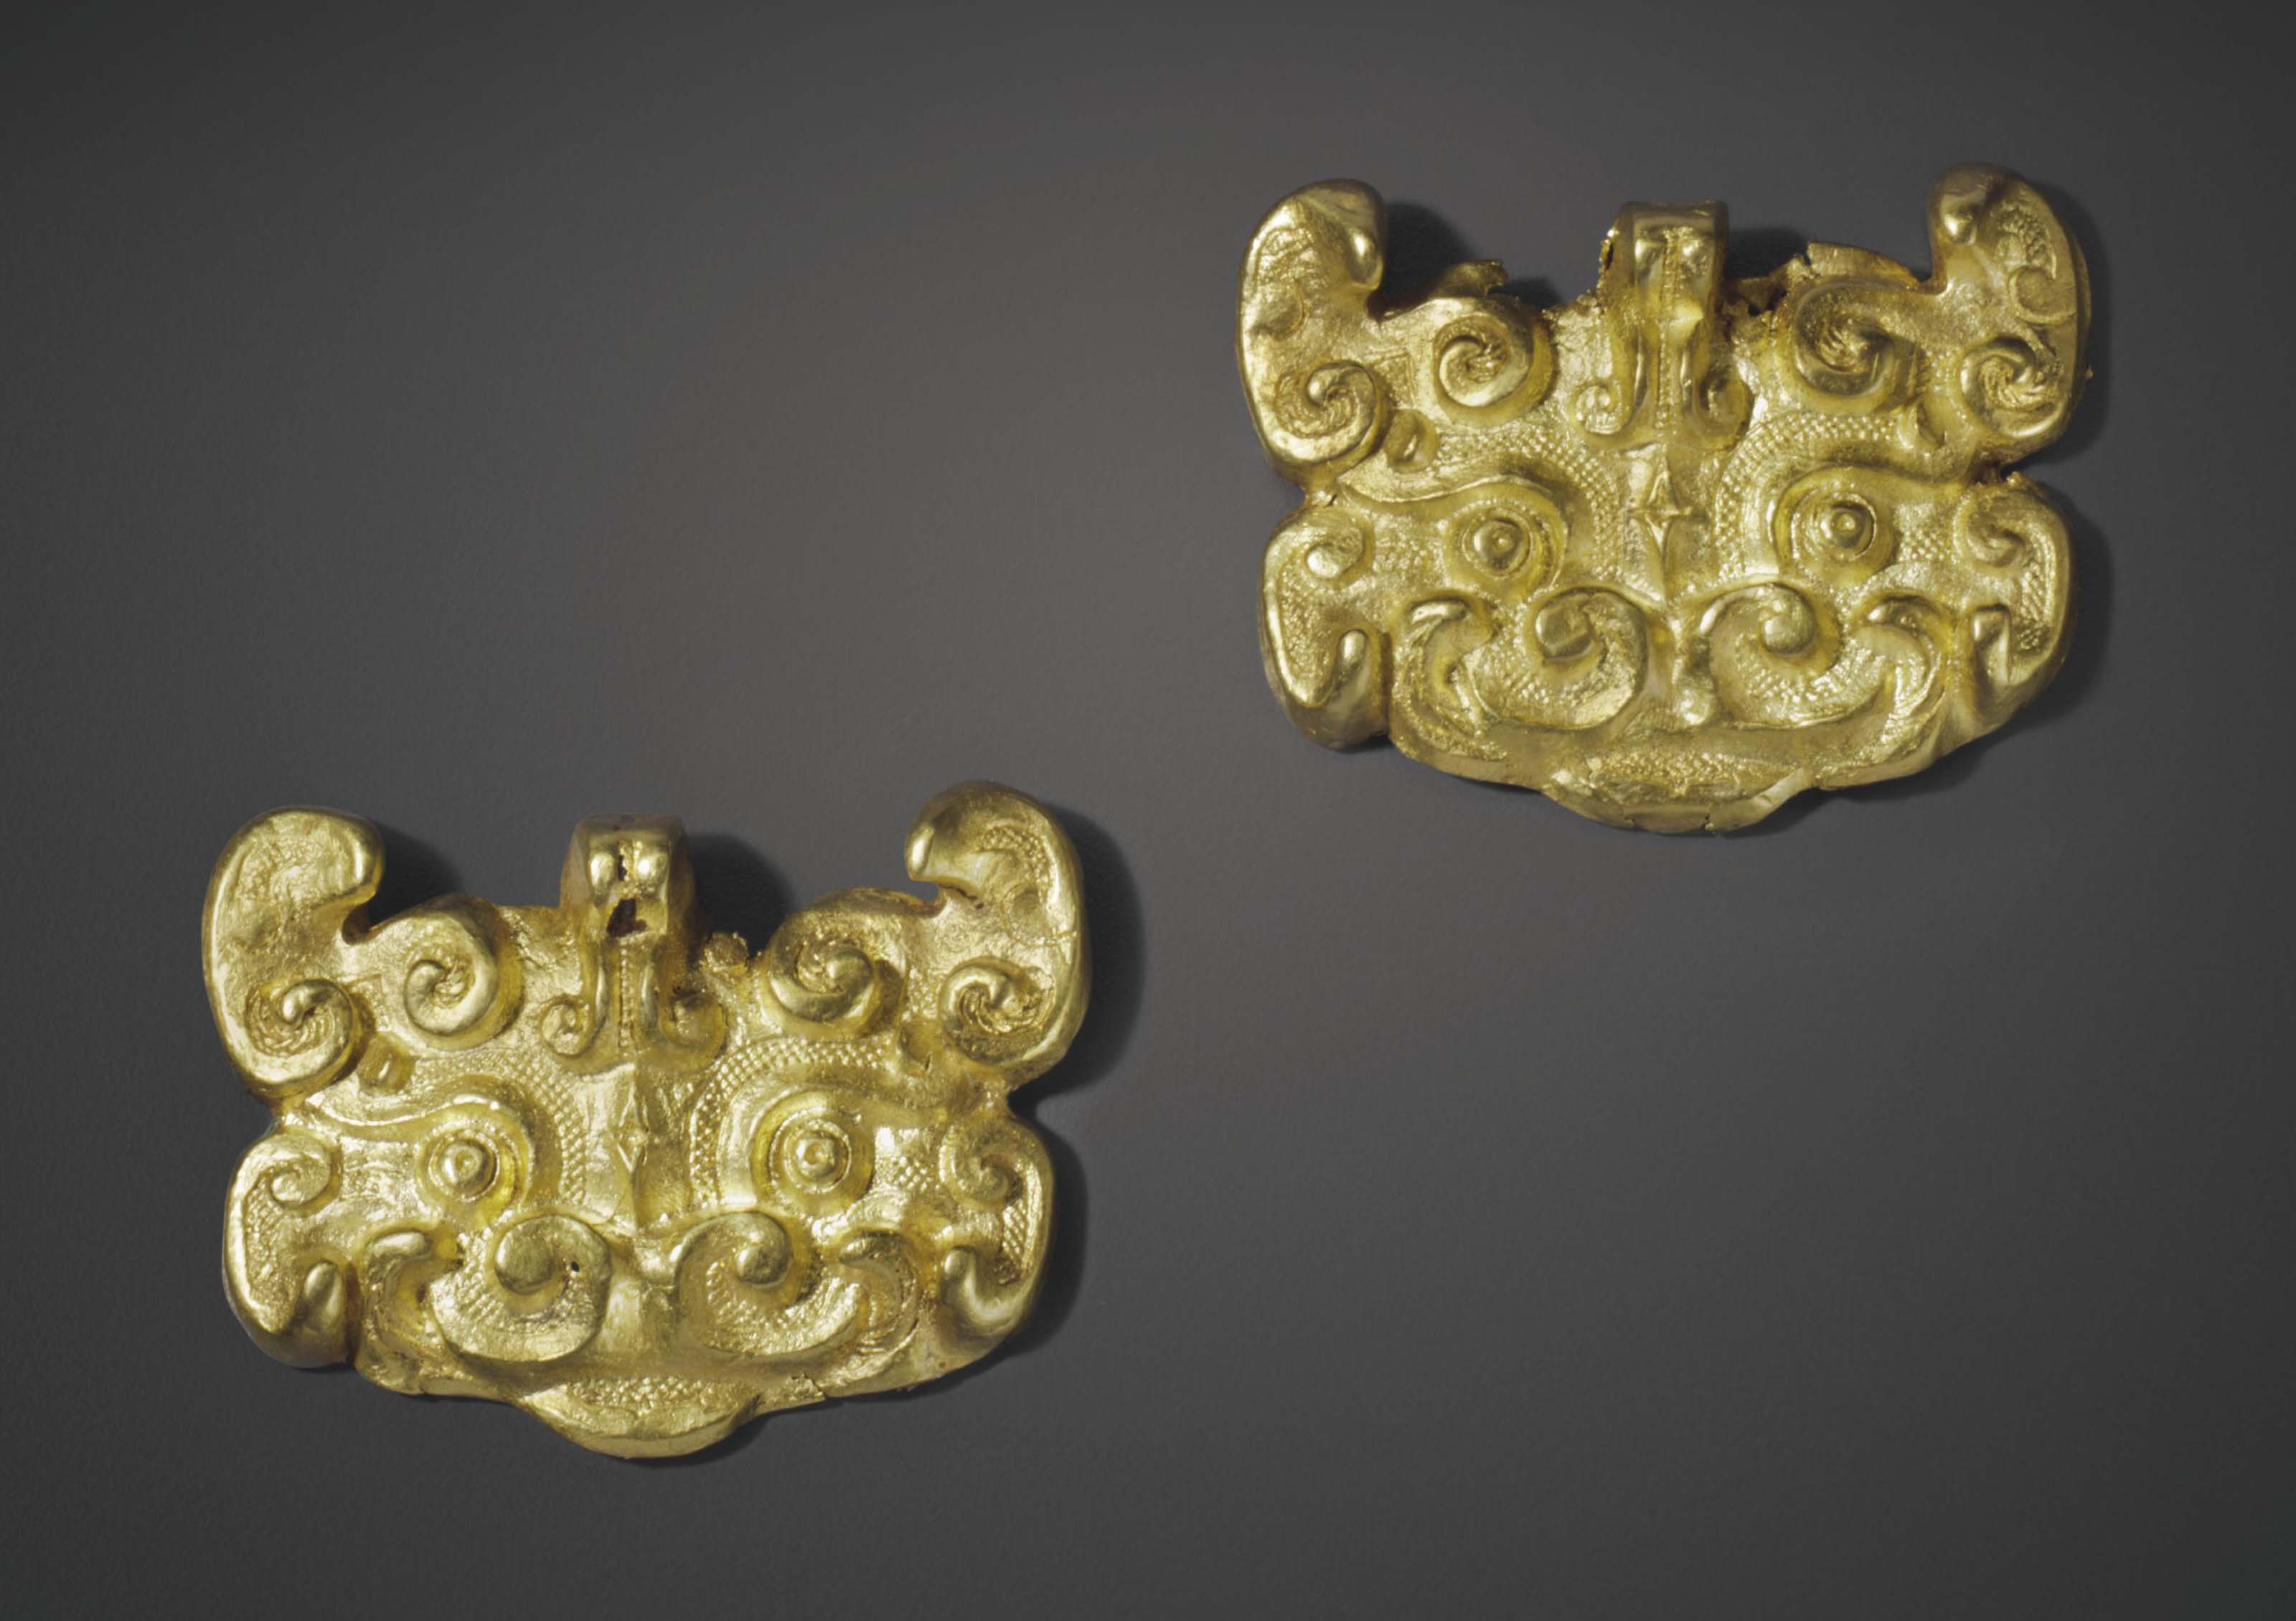 A PAIR OF GOLD MASK-FORM FITTI